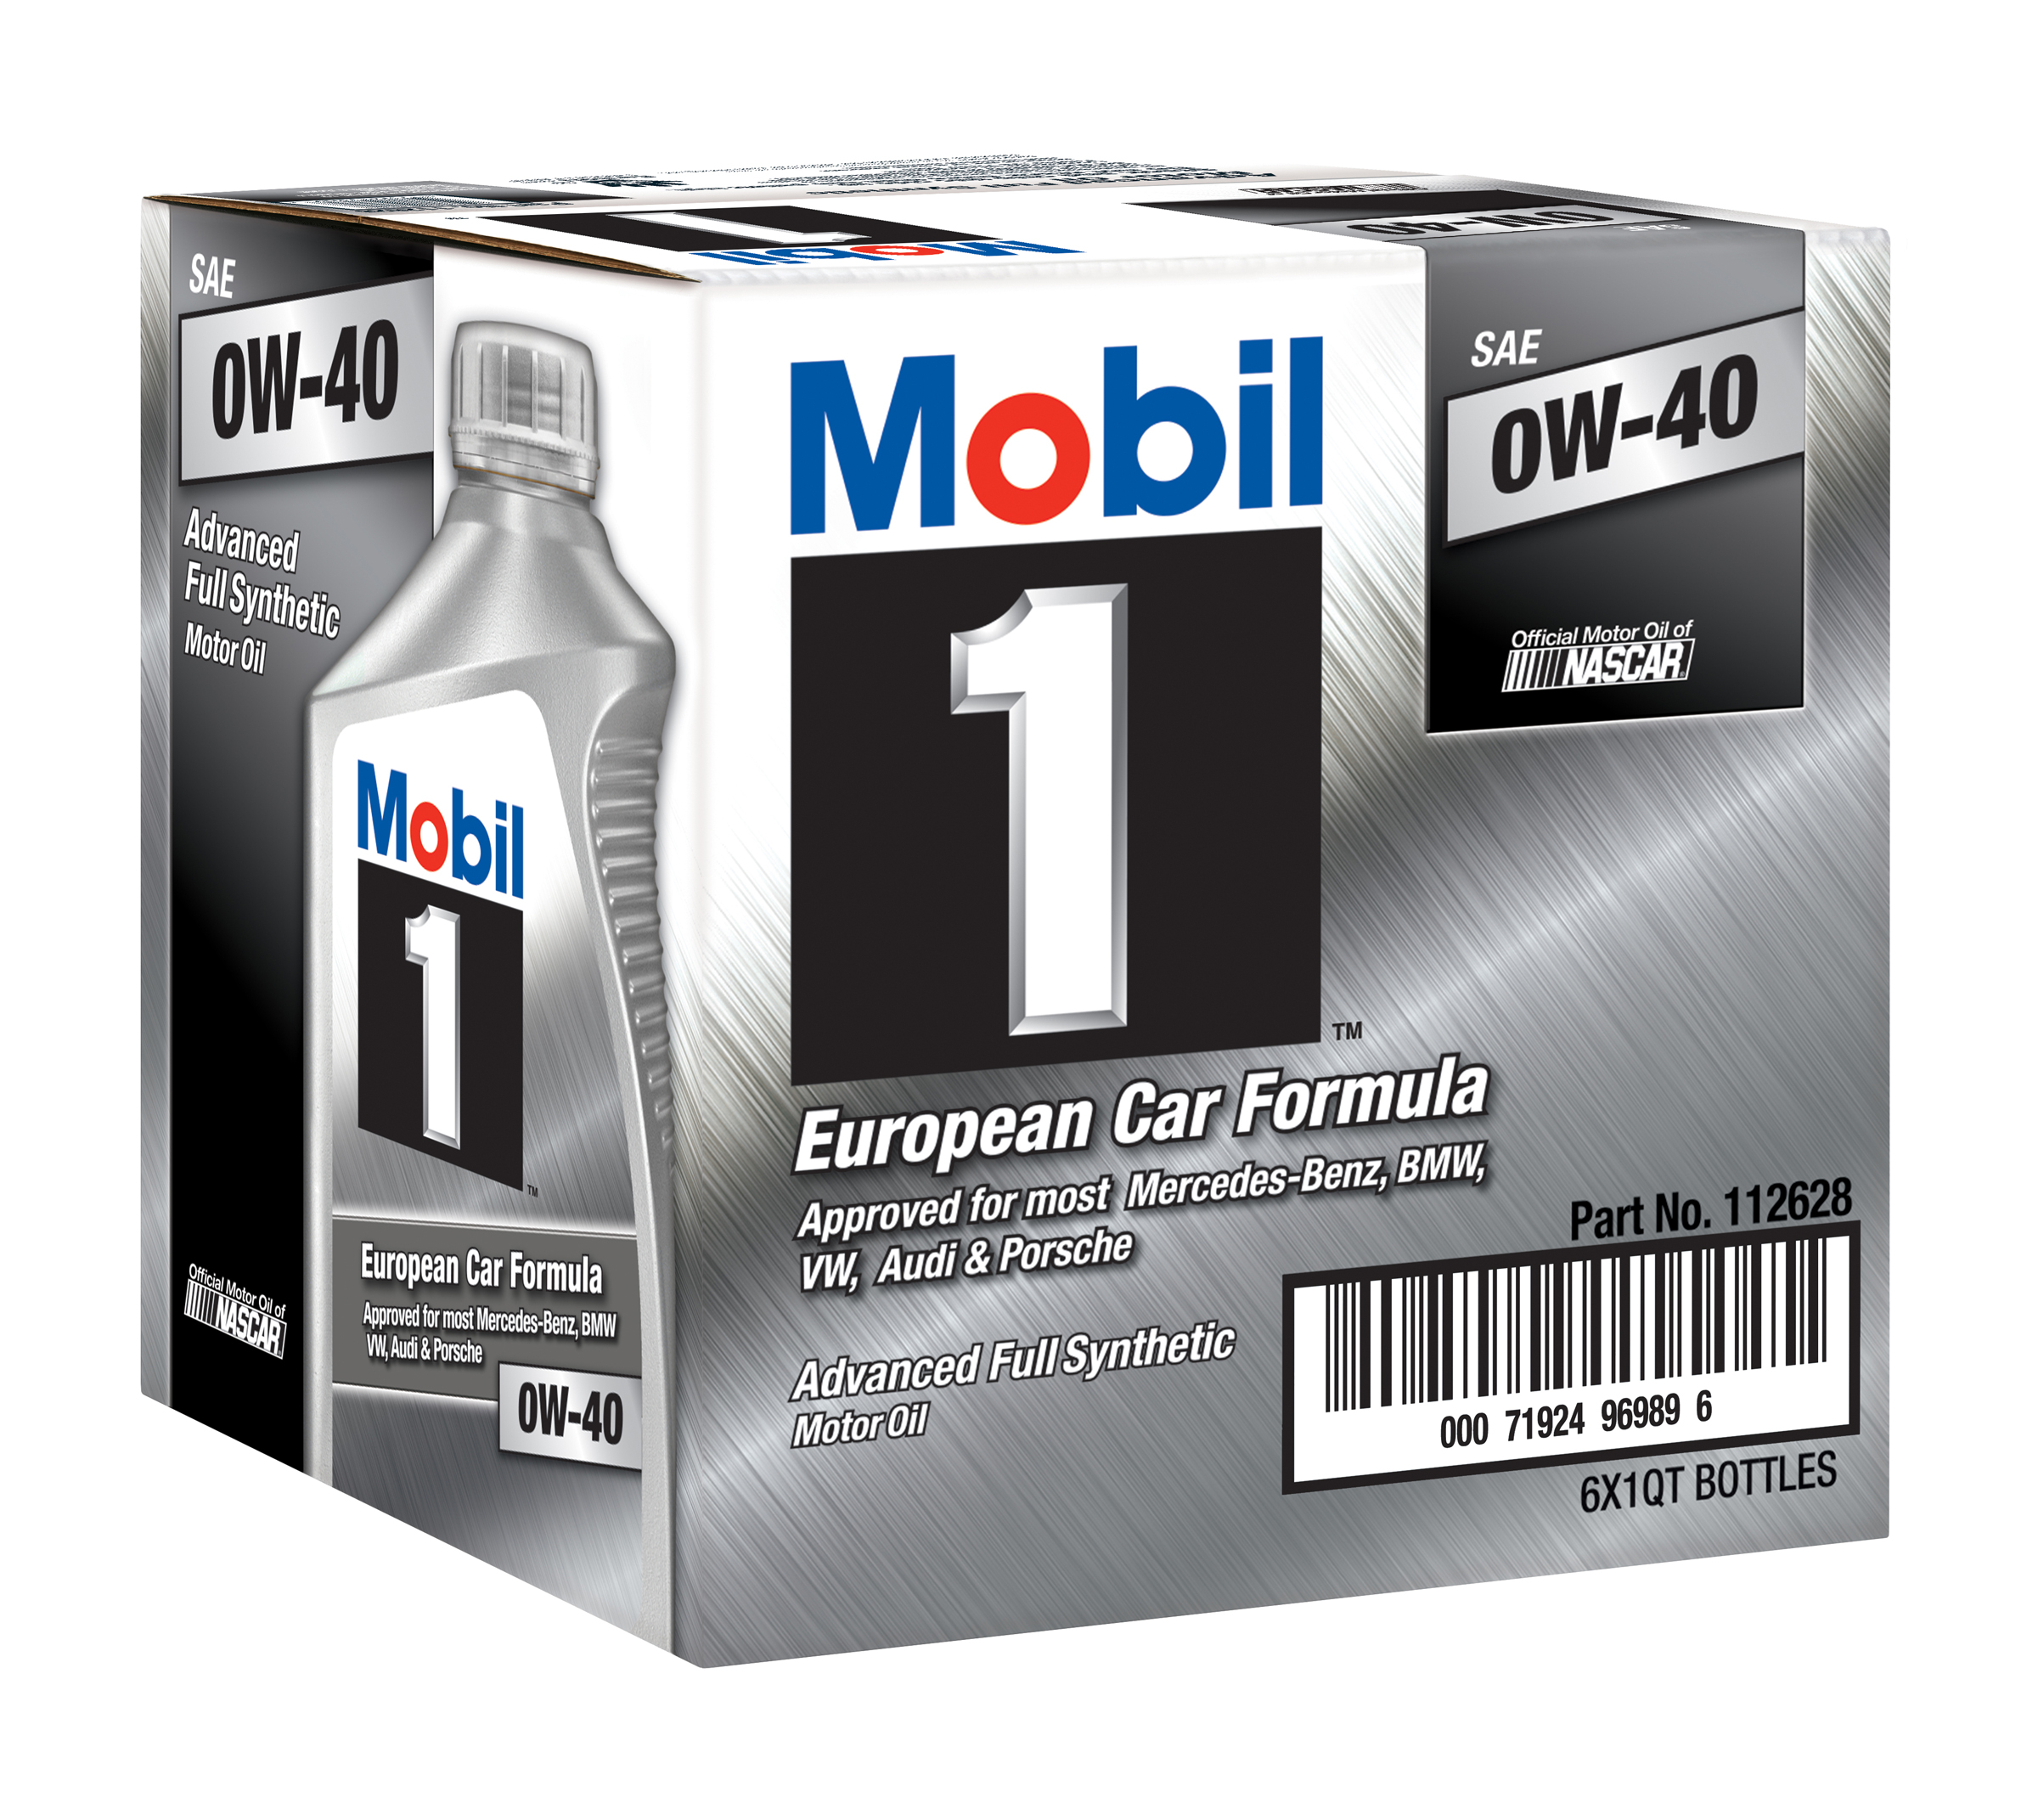 mobil 1 advanced full synthetic motor oil 0w 40 6 pack. Black Bedroom Furniture Sets. Home Design Ideas